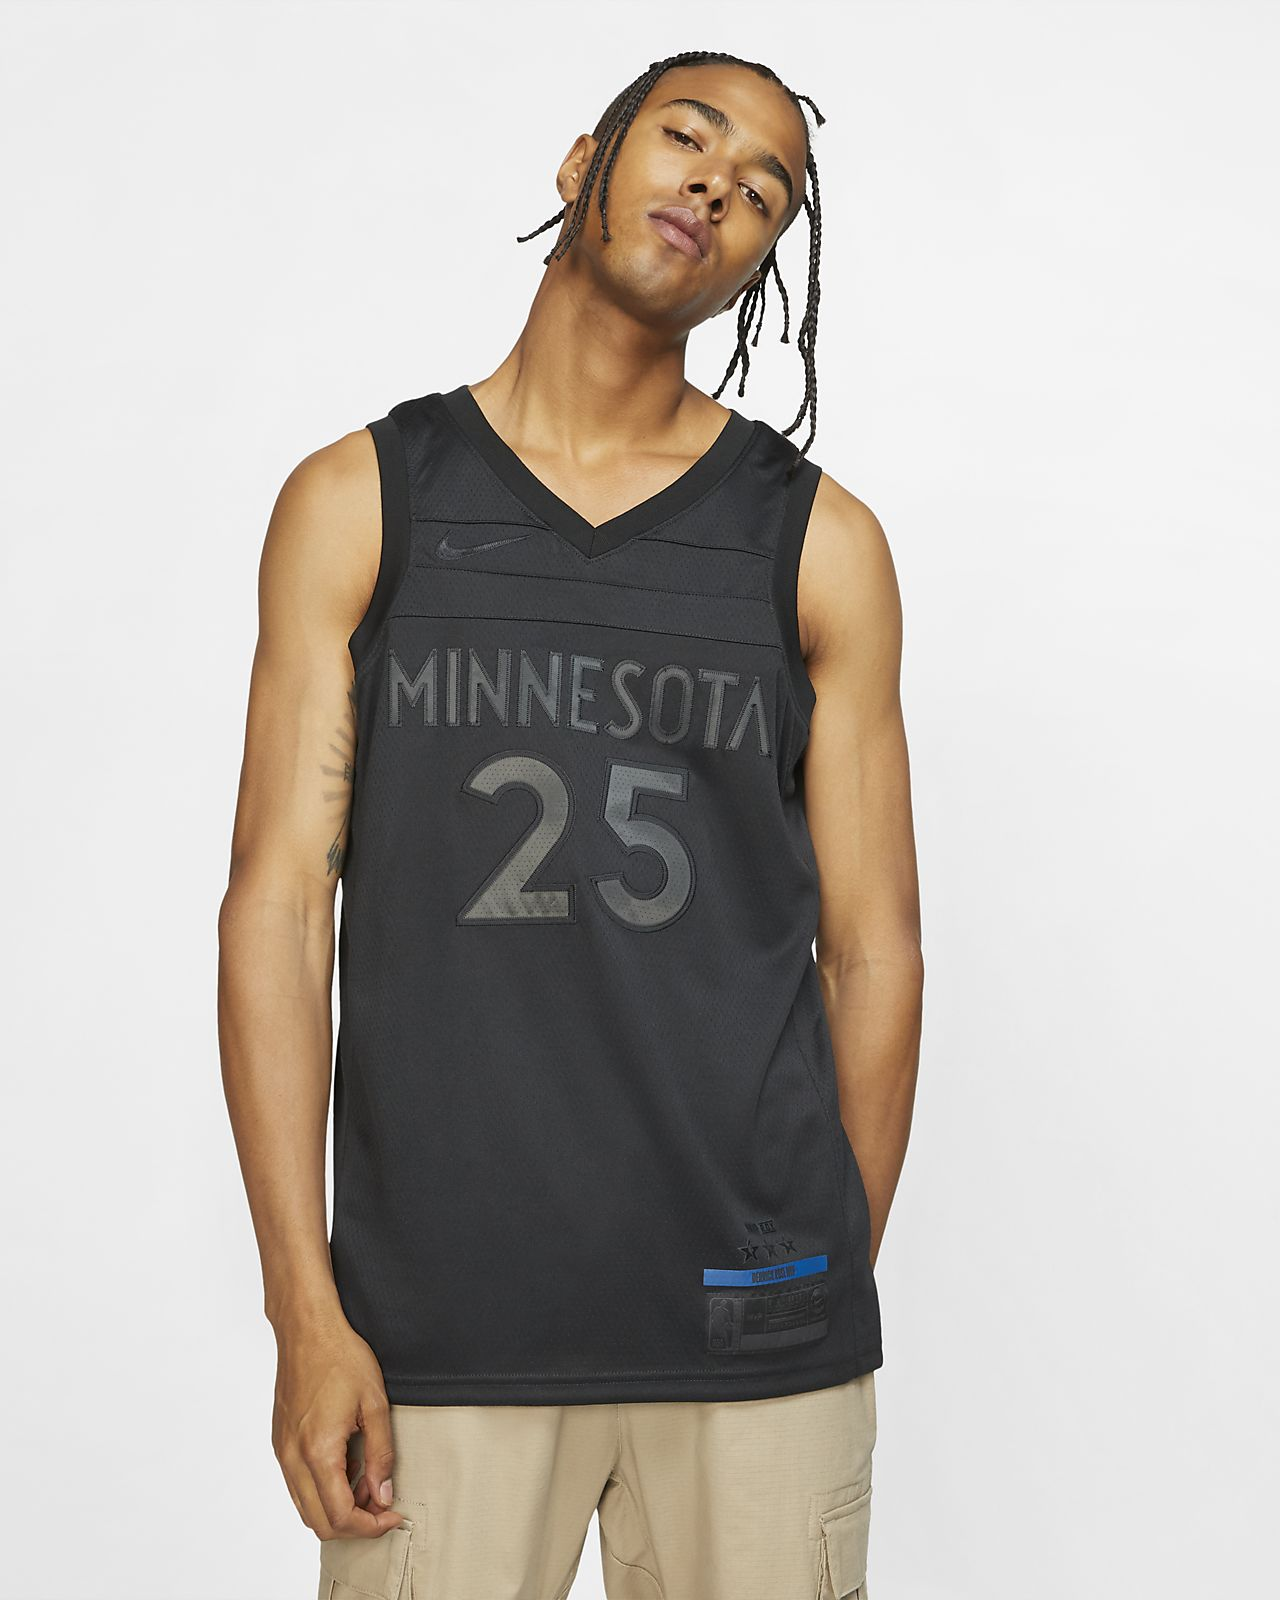 明尼苏达森林狼队 (Derrick Rose) MVP Swingman Nike NBA Connected Jersey 男子球衣